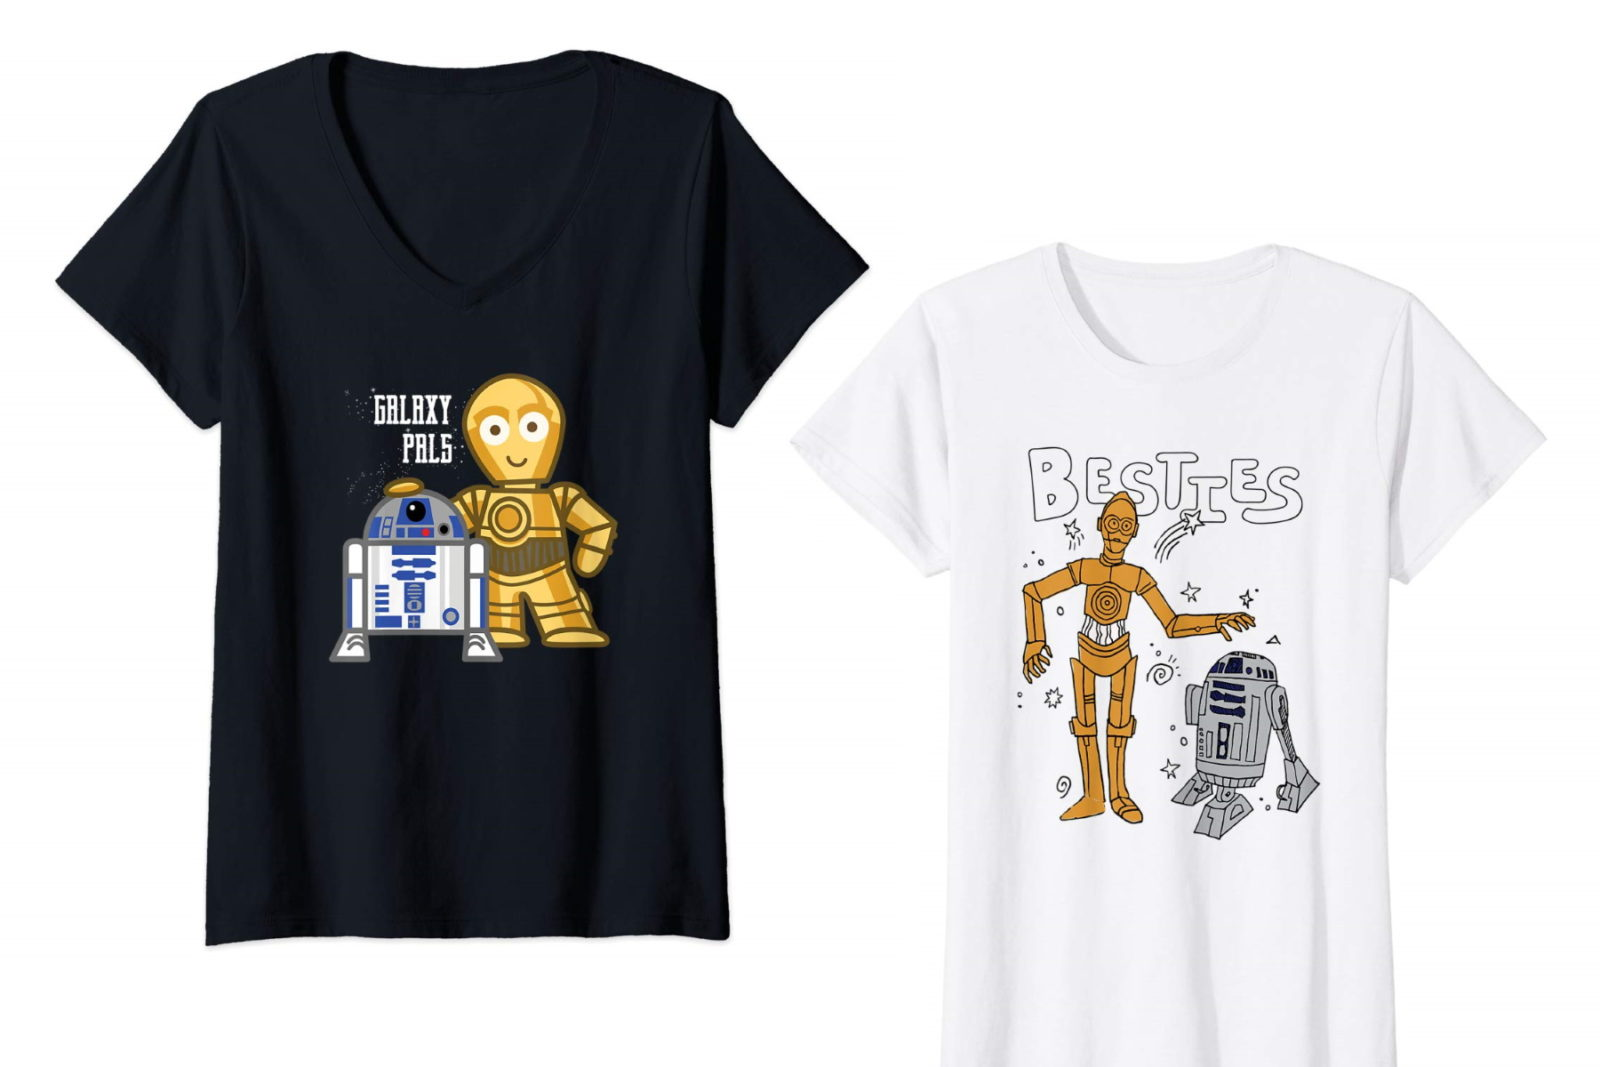 Celebrate Friendship Day with Star Wars Tees